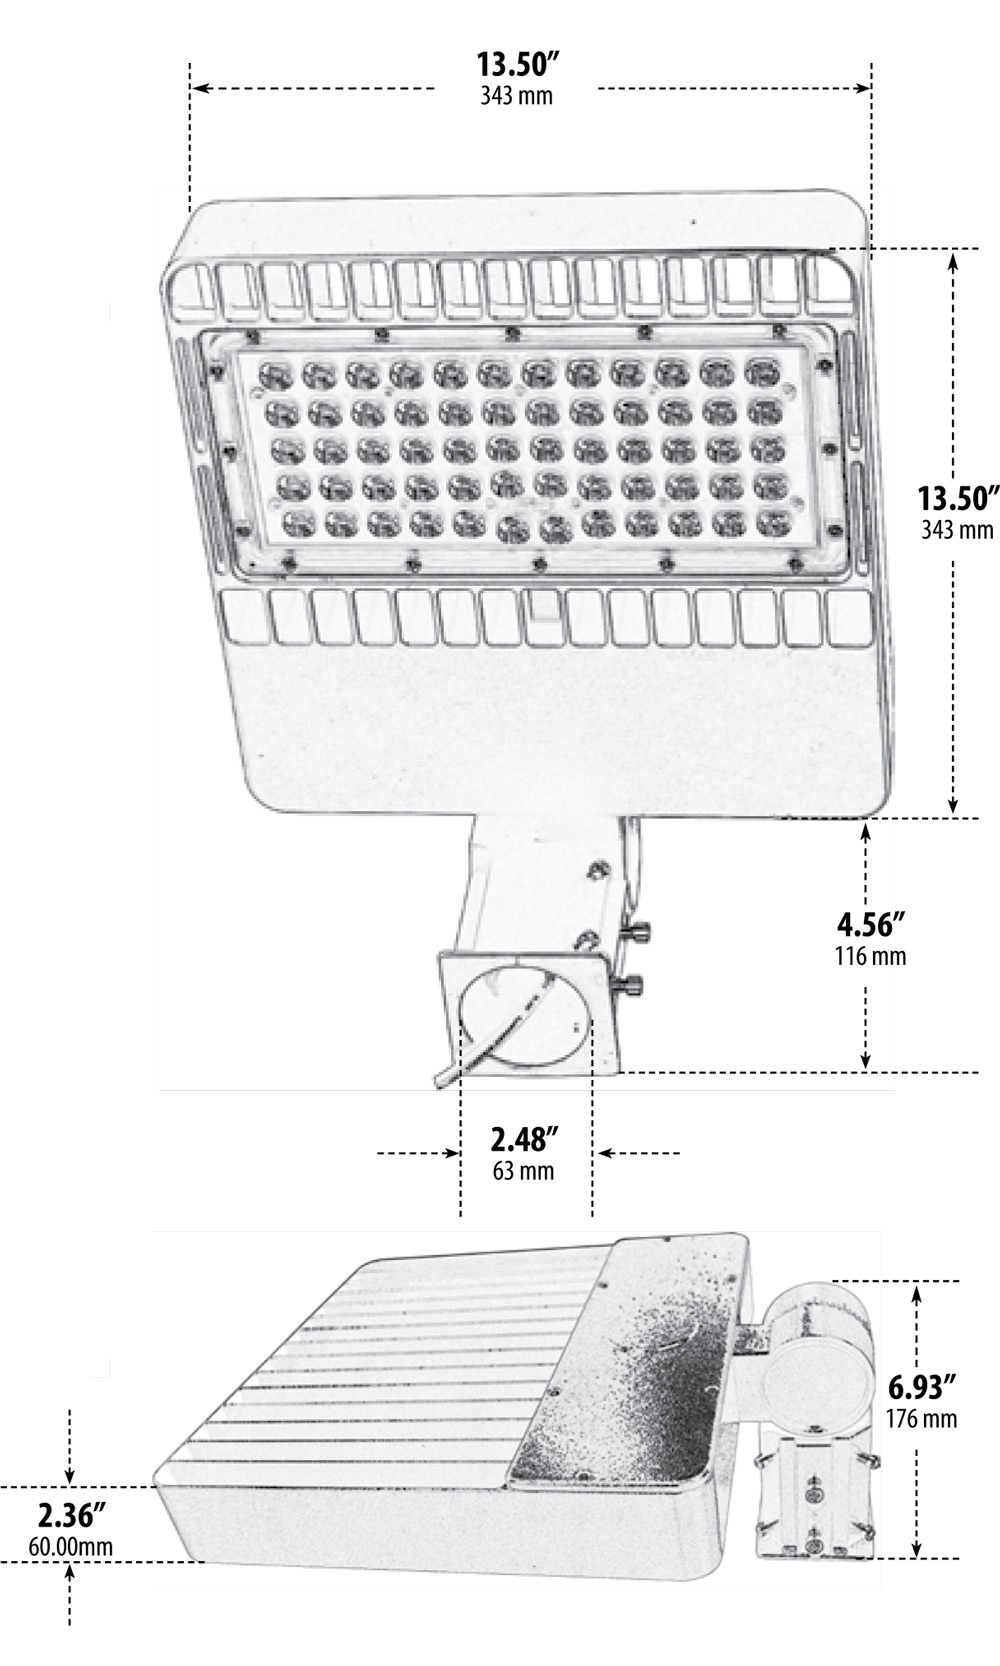 DF-LED7755 LED Large Flood Light Dimensions Diagram